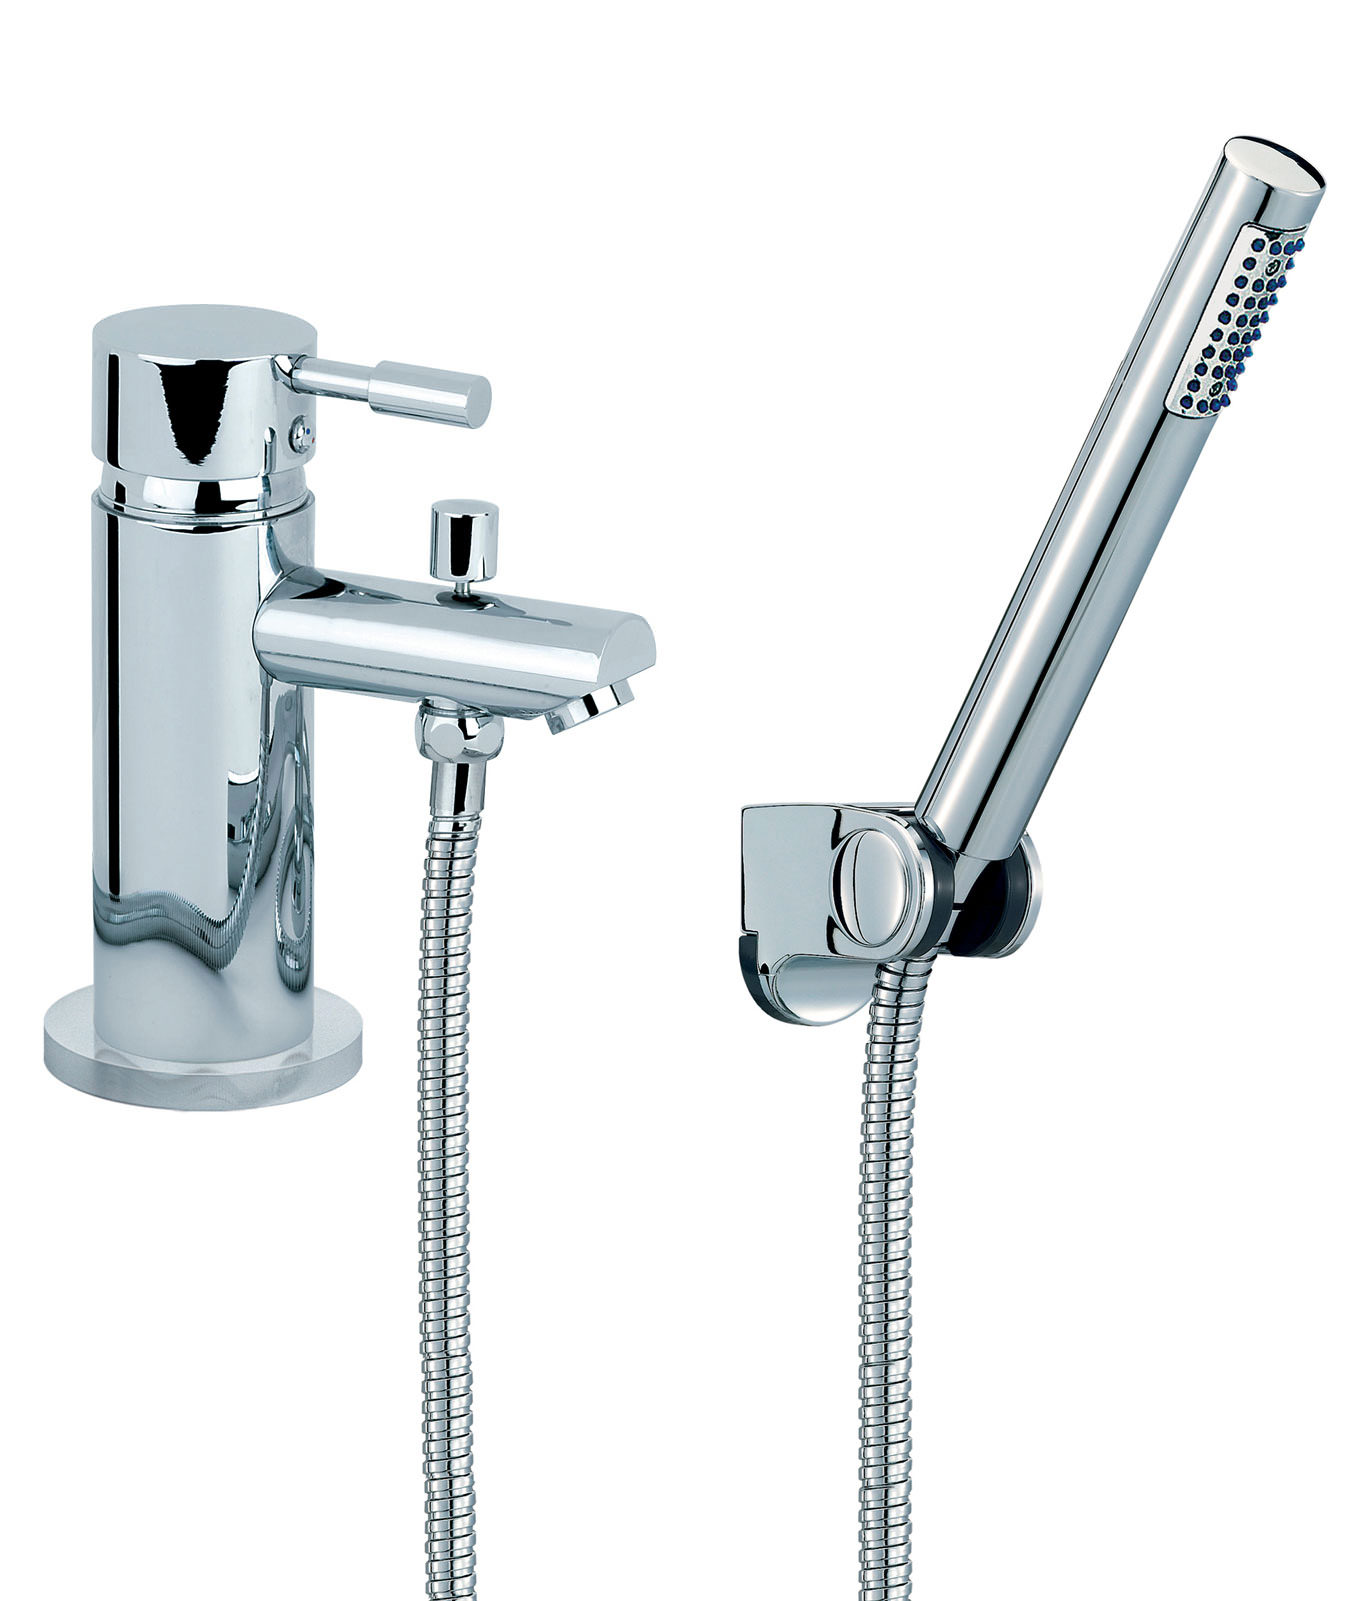 Mayfair f series one hole bath shower mixer tap sfl050 for Bathroom taps